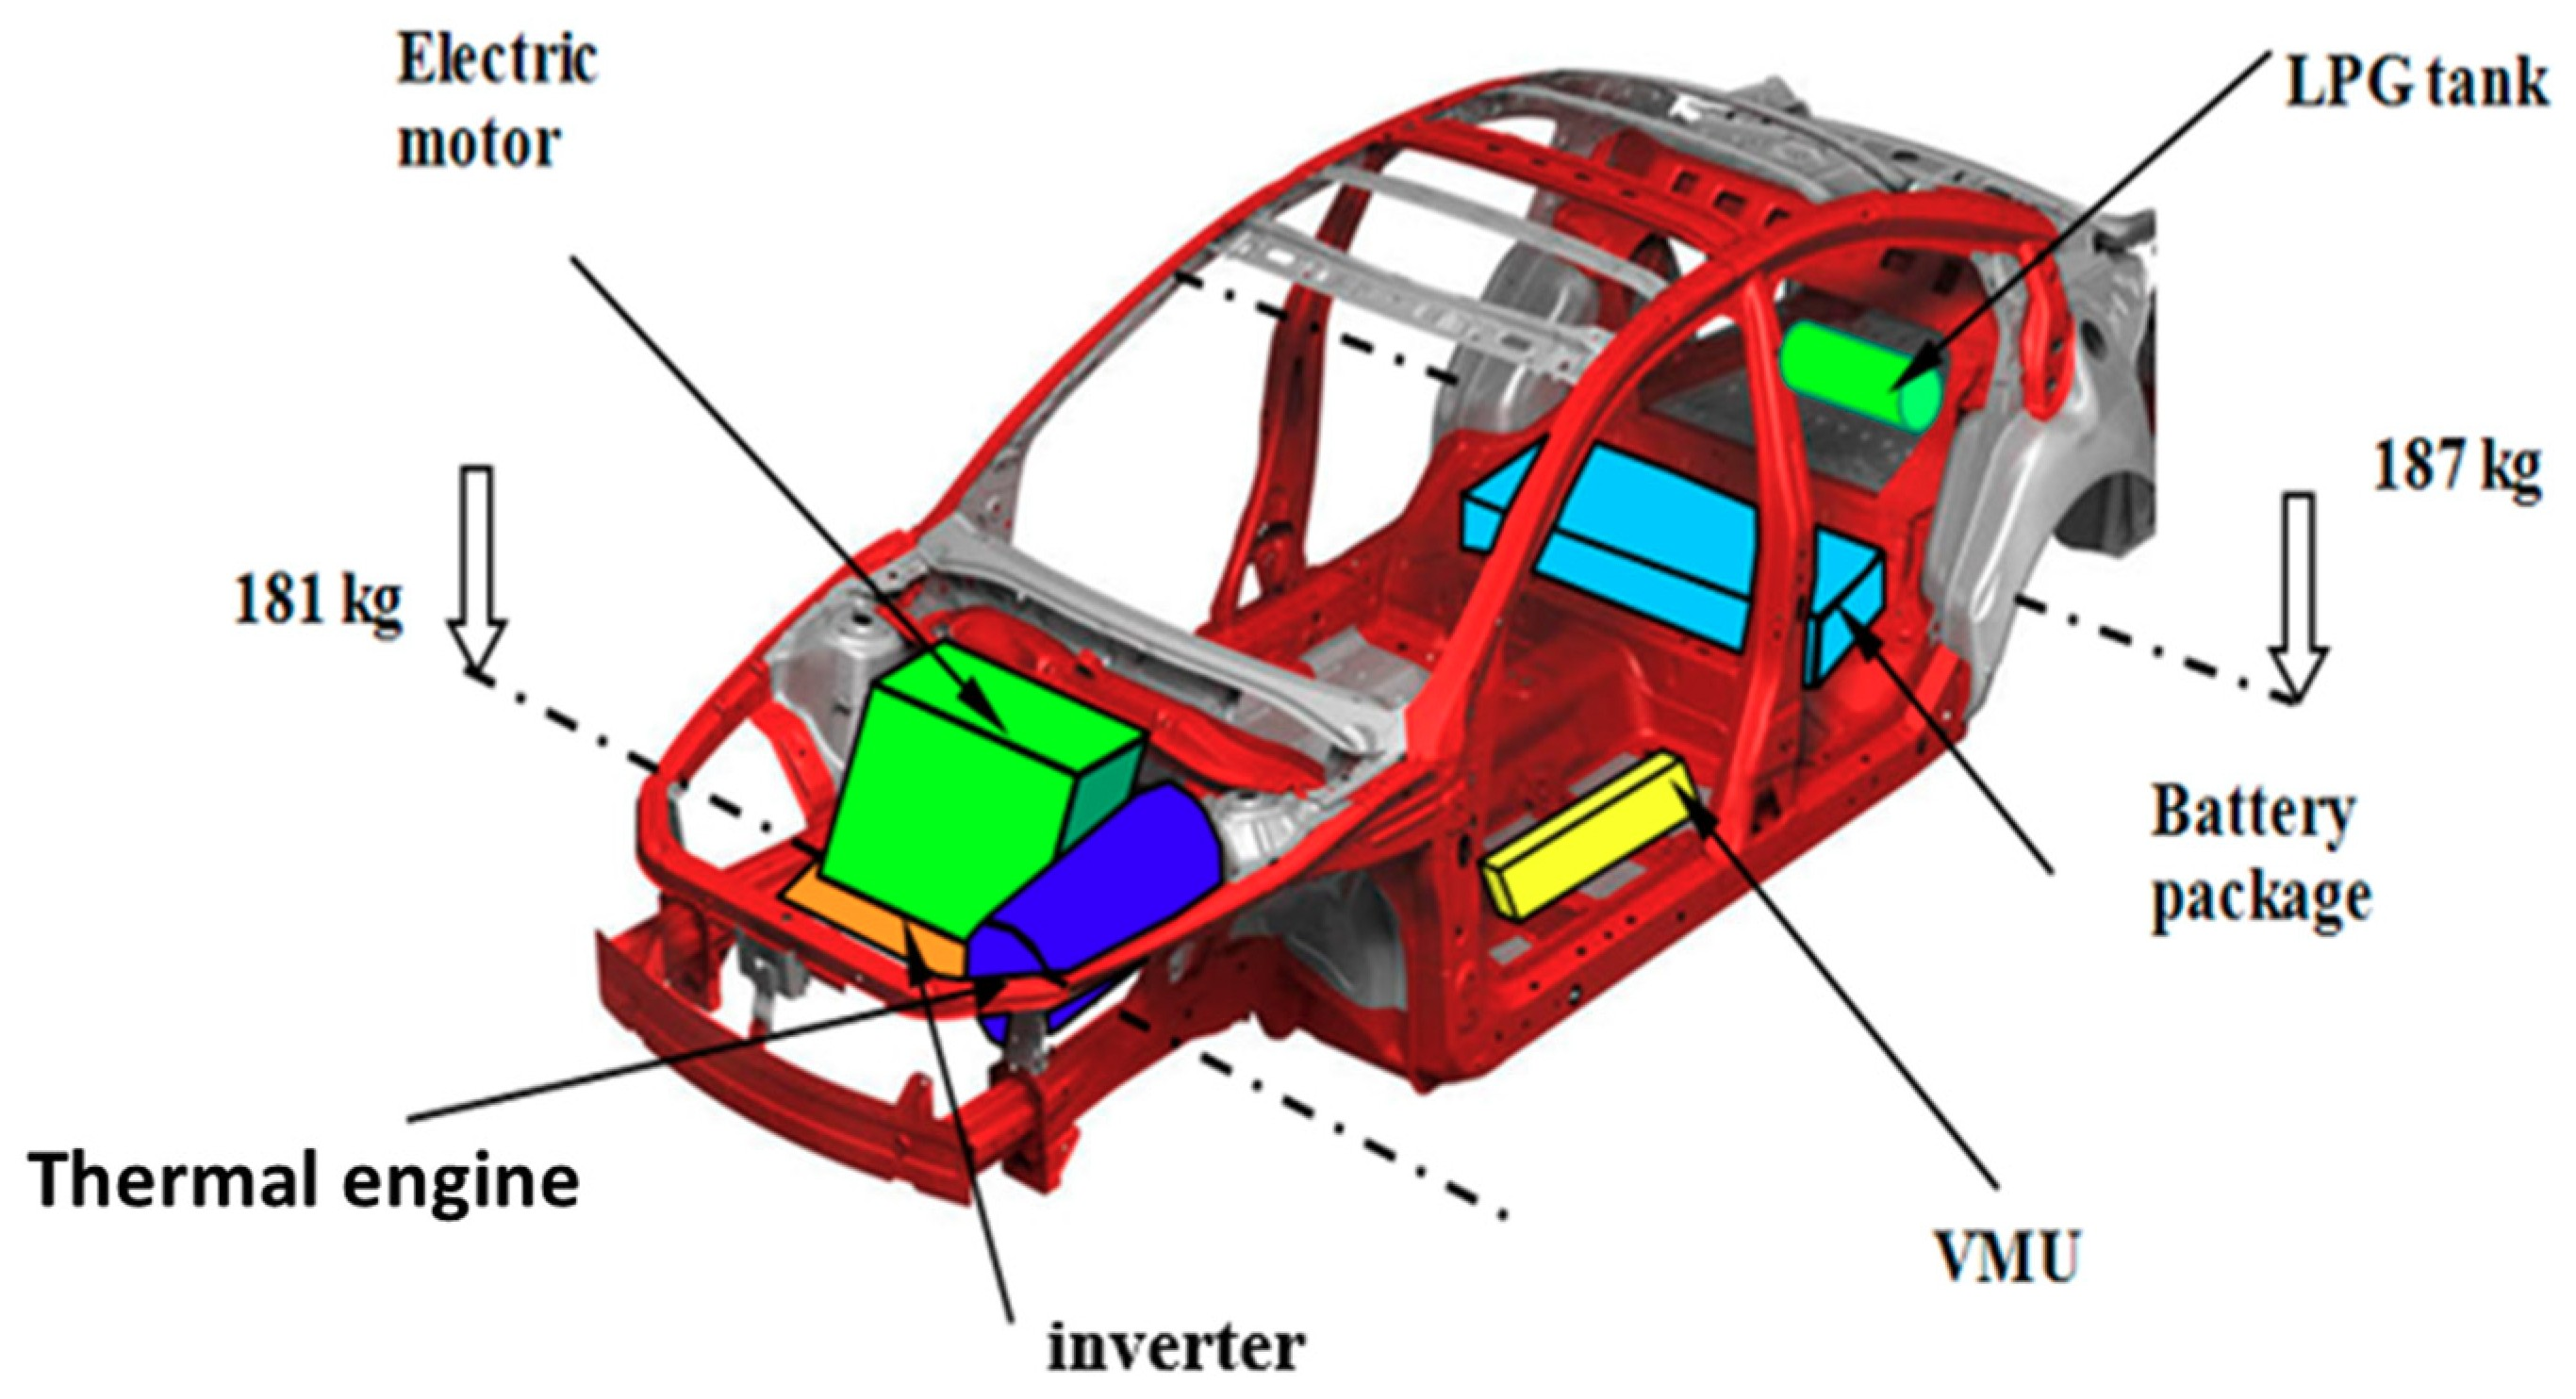 Car Engine Diagram for Driving Test Energies Free Full Text Of Car Engine Diagram for Driving Test